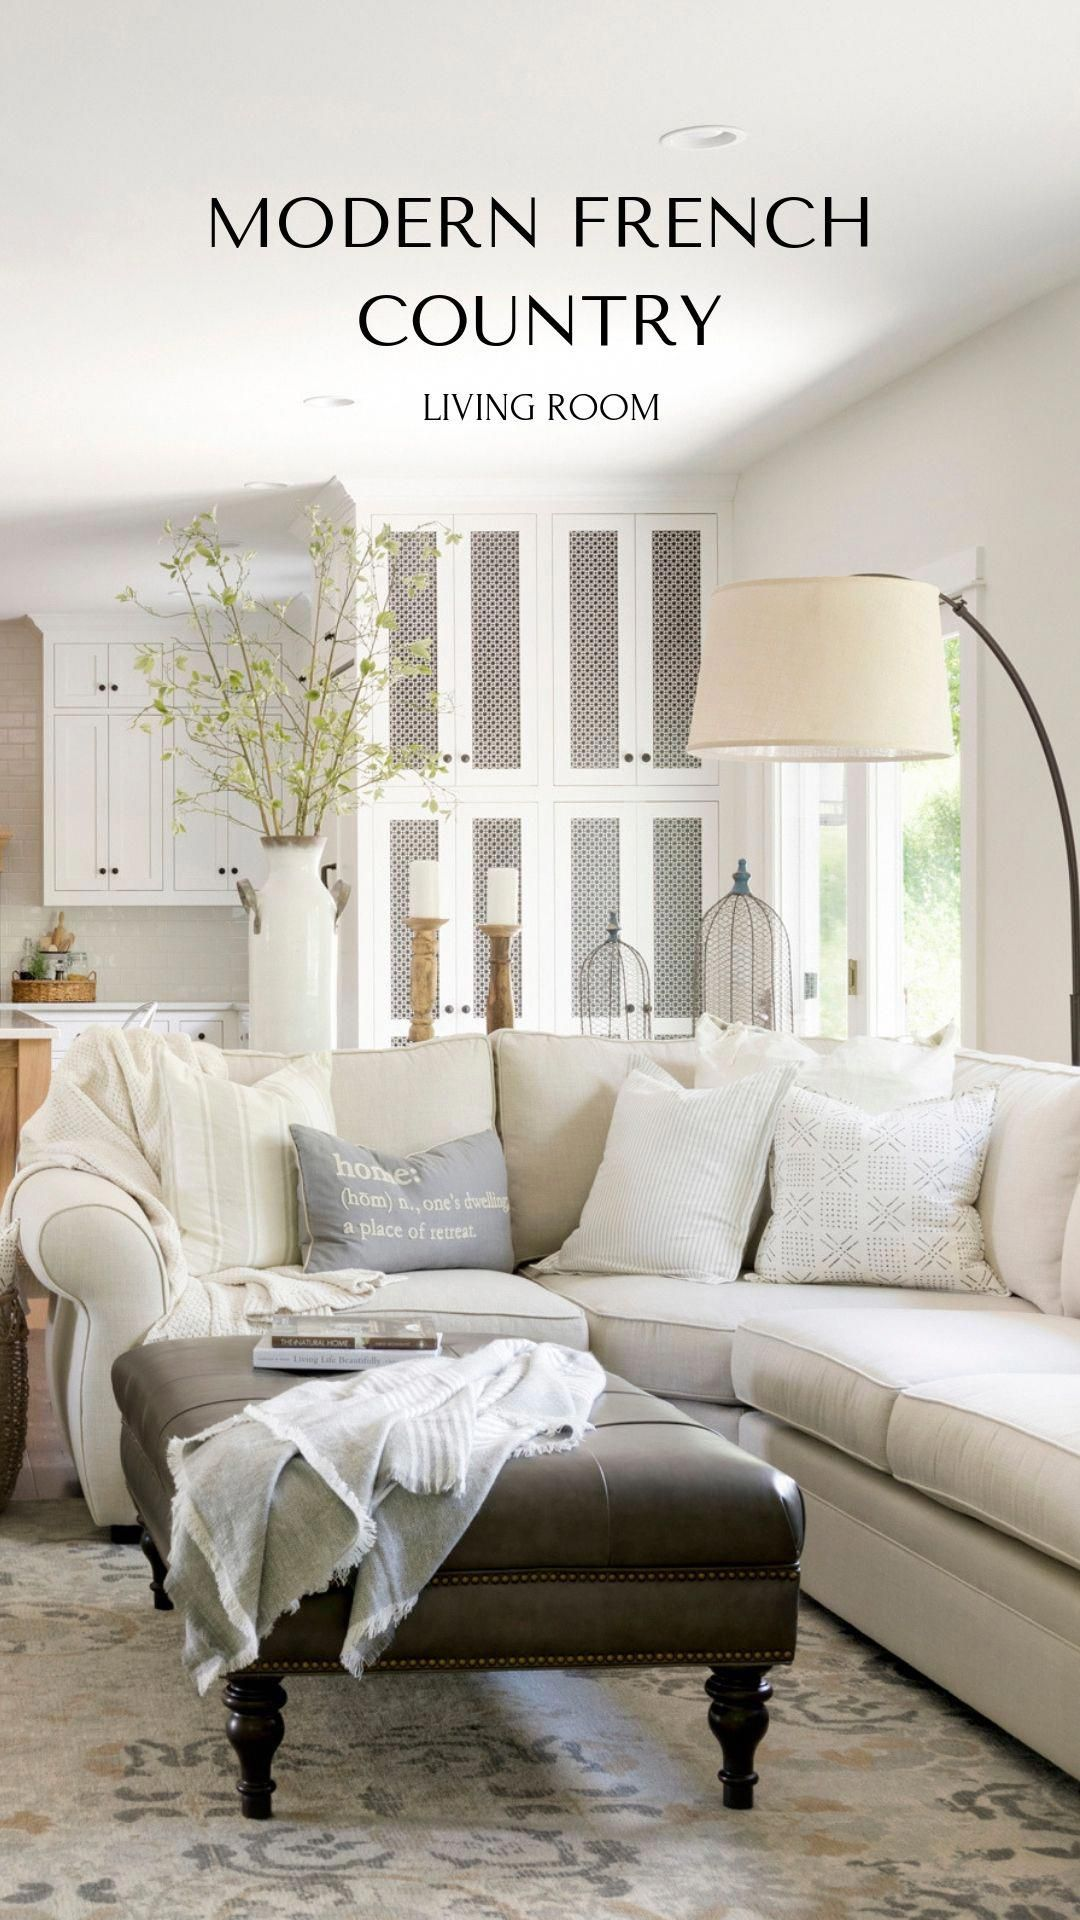 hgtv french country decorating ideas #Frenchcountrydecorating